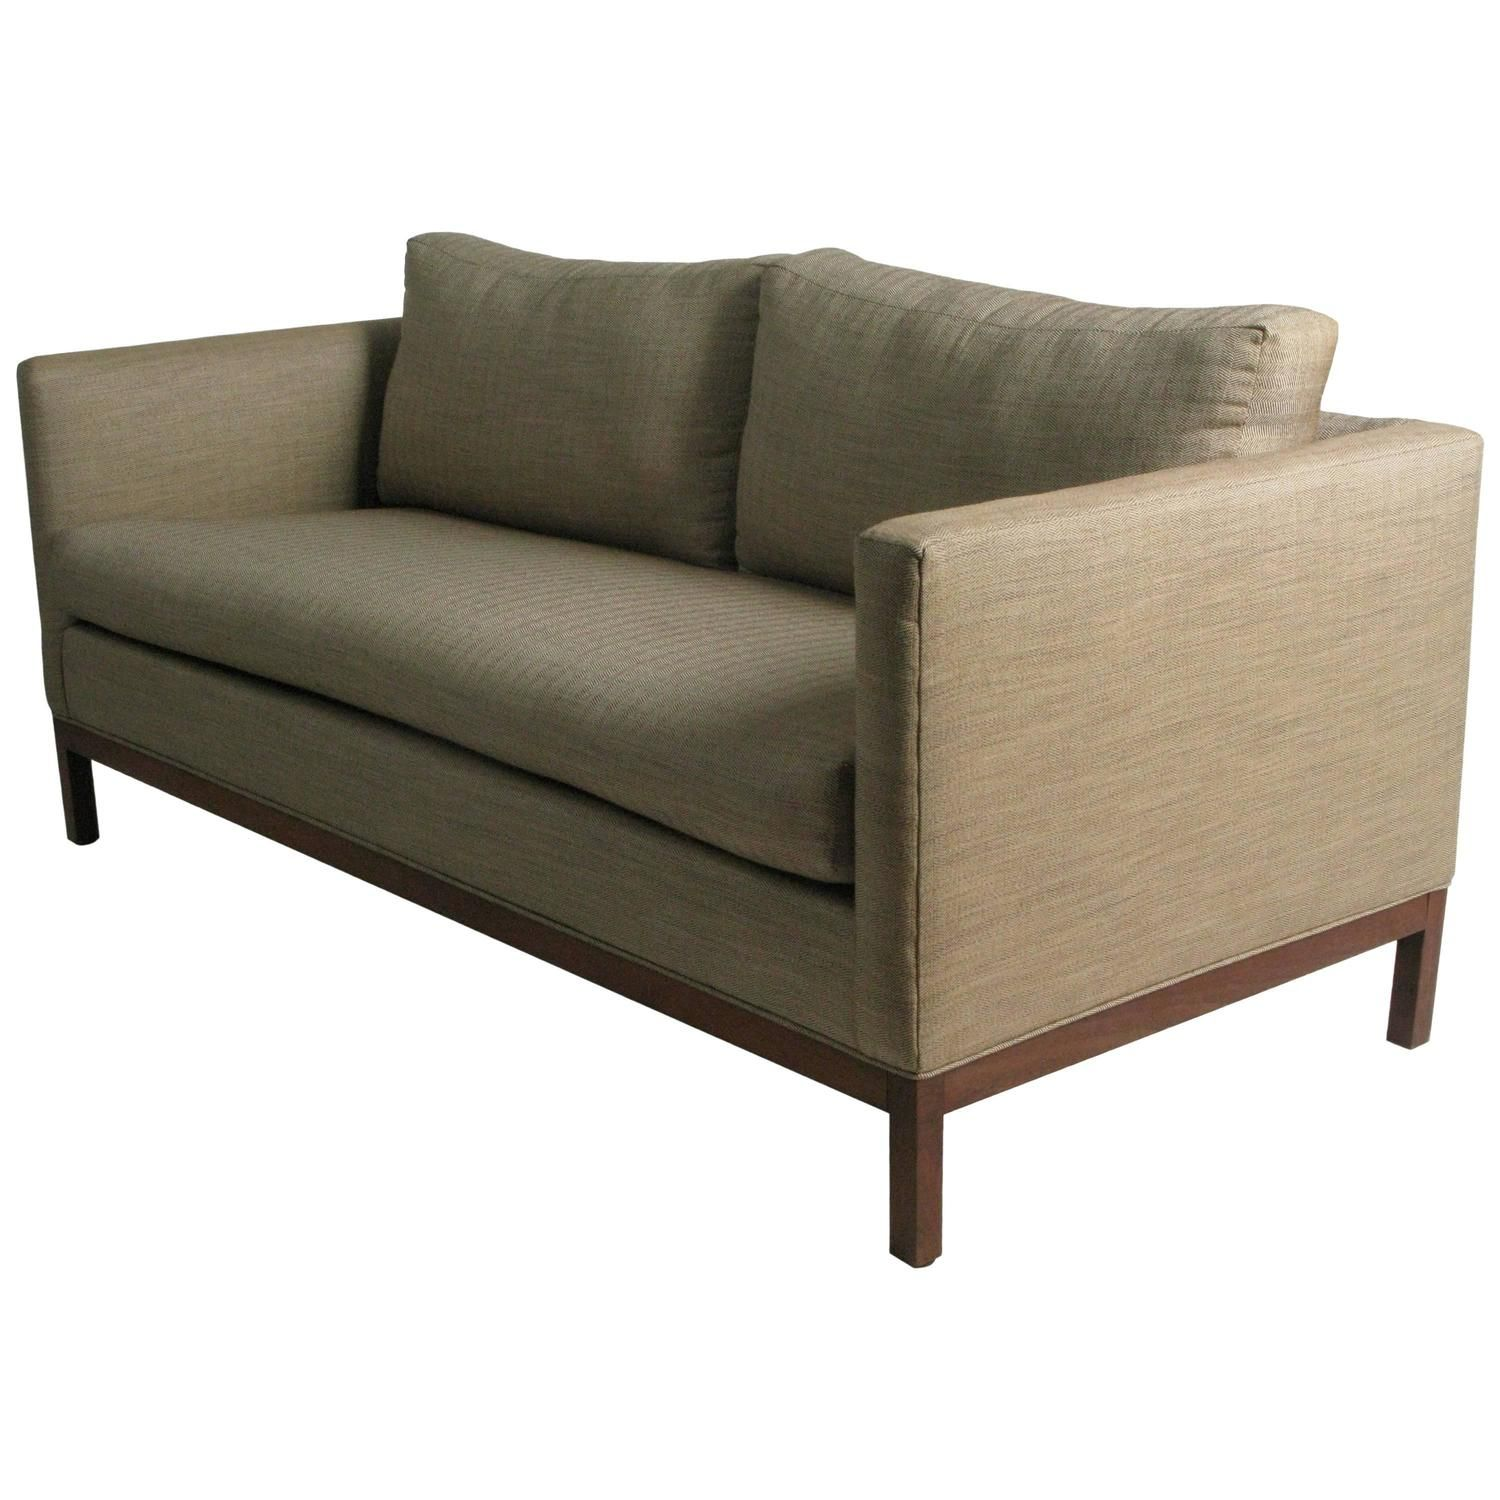 Sensational Compact Tuxedo Sofa By Knoll General Ideas Sofa Sofa Gmtry Best Dining Table And Chair Ideas Images Gmtryco